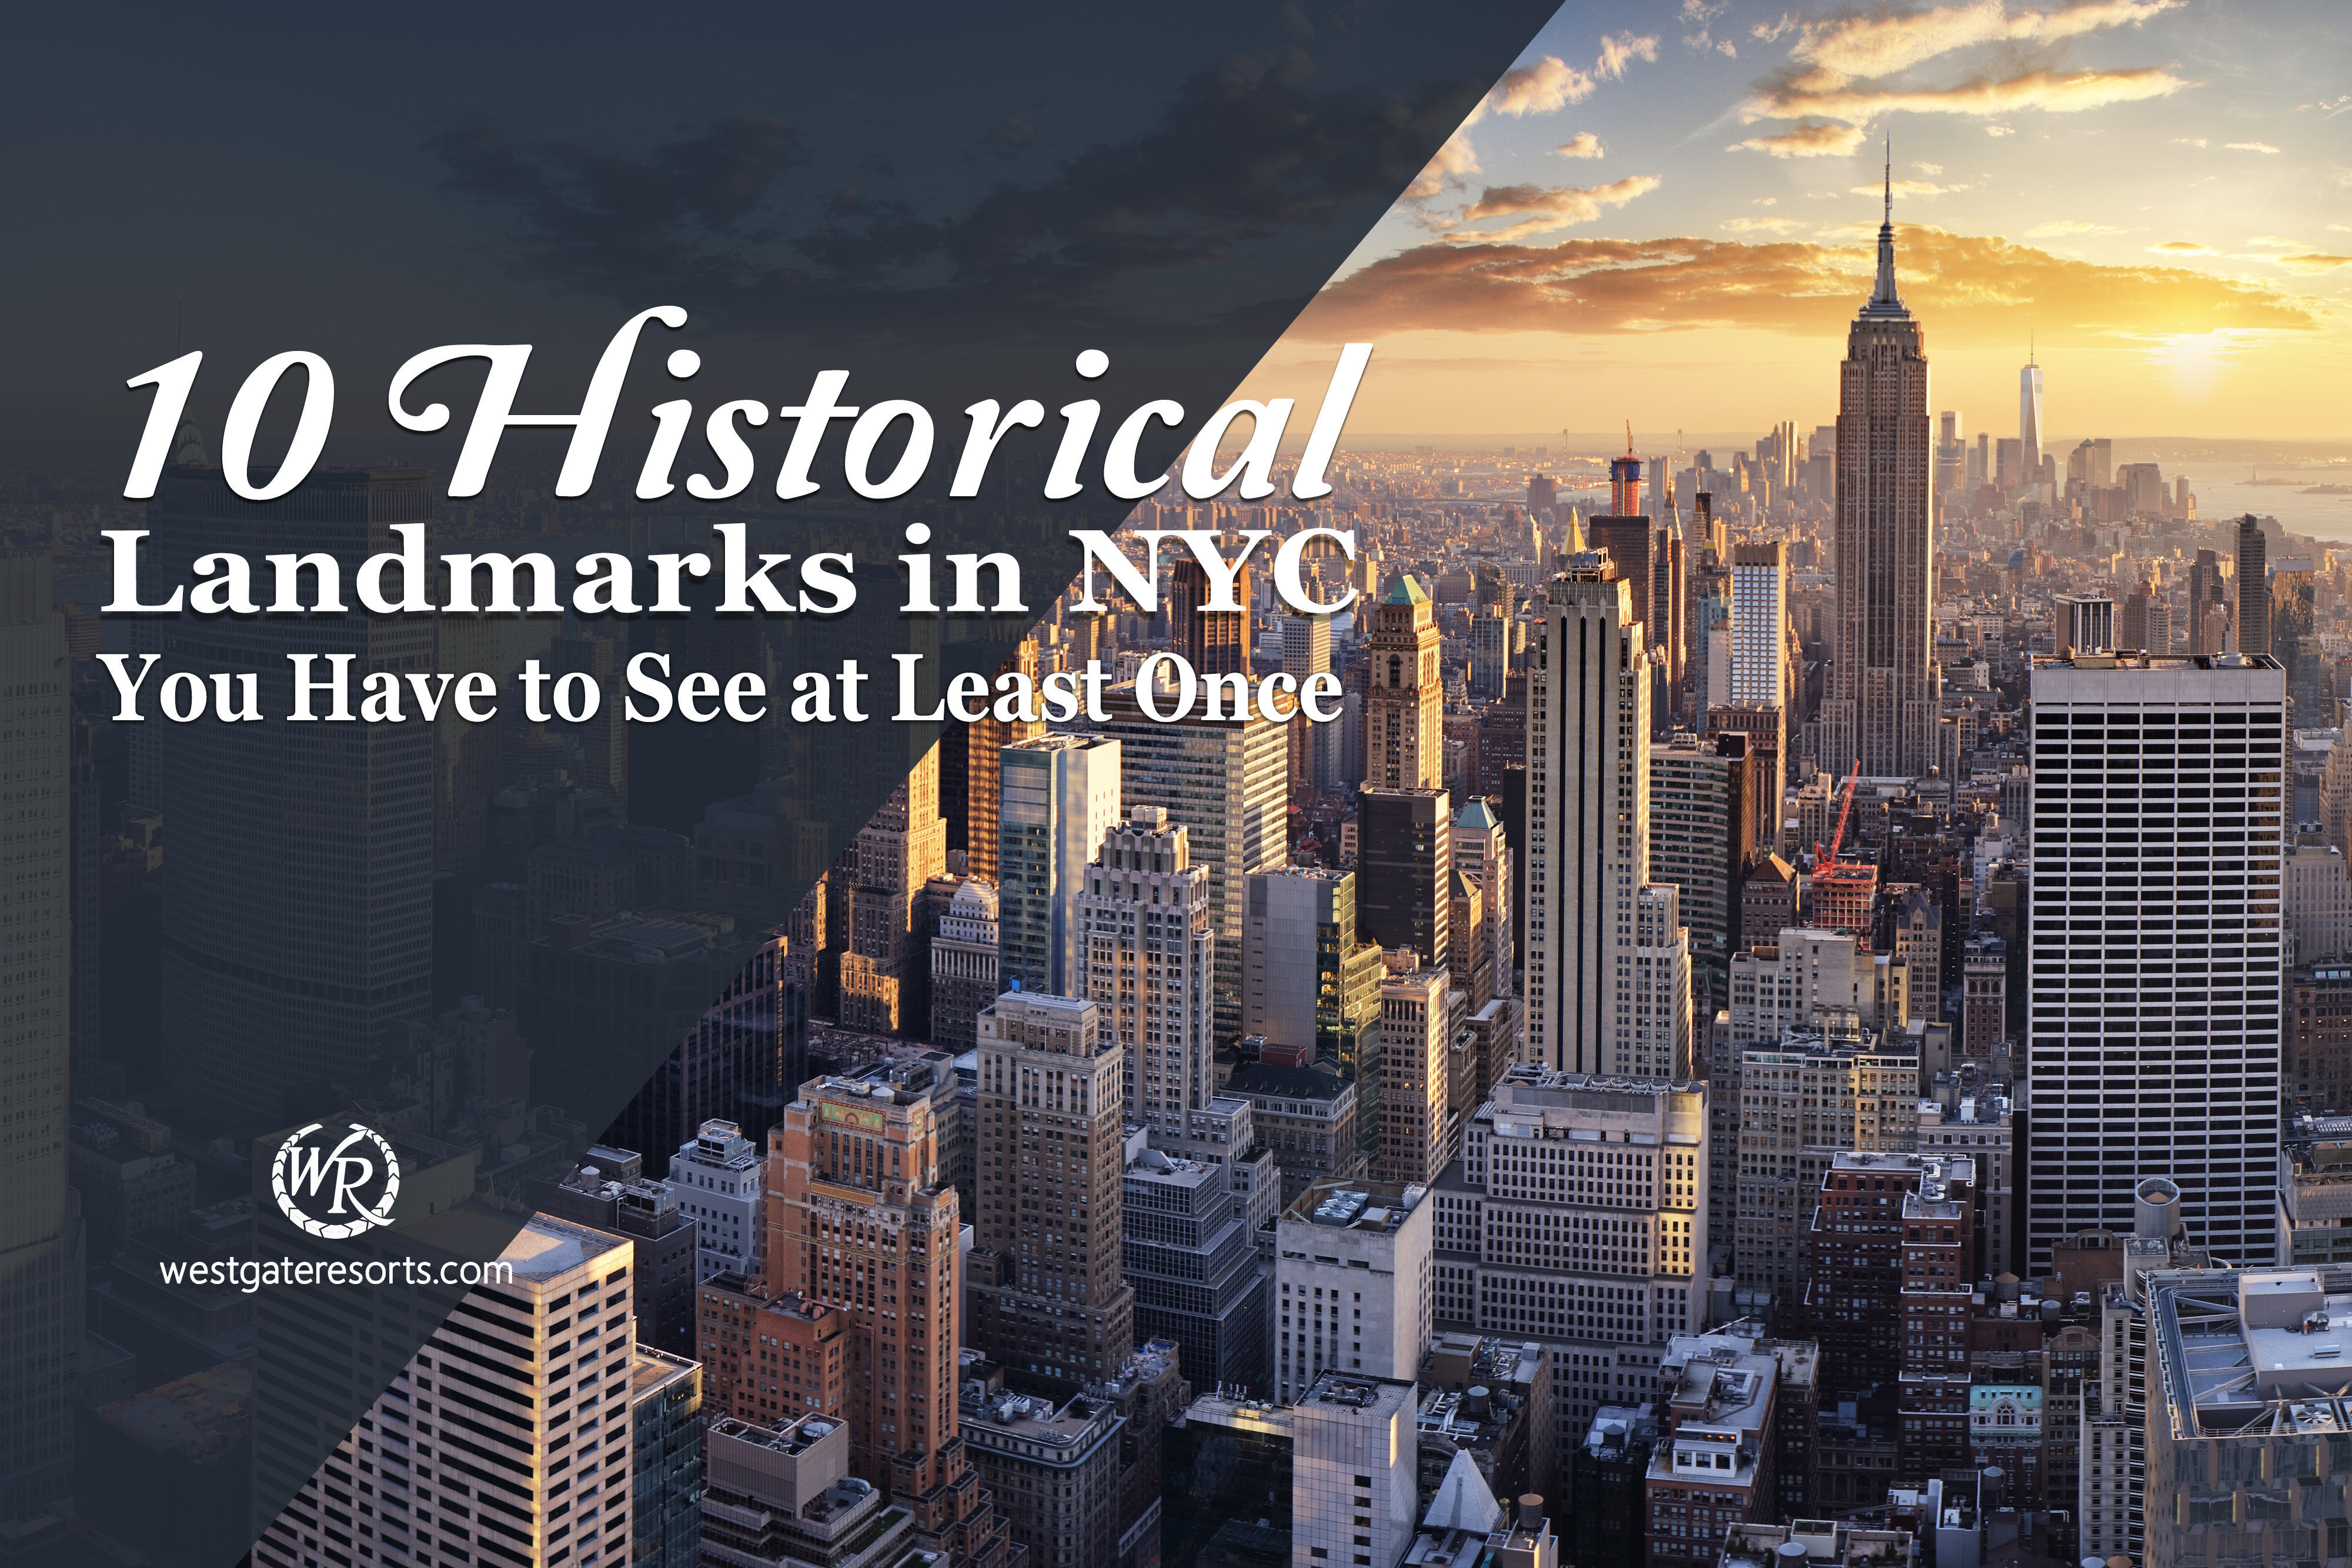 10 Historical Landmarks in NYC You Have to See at Least Once